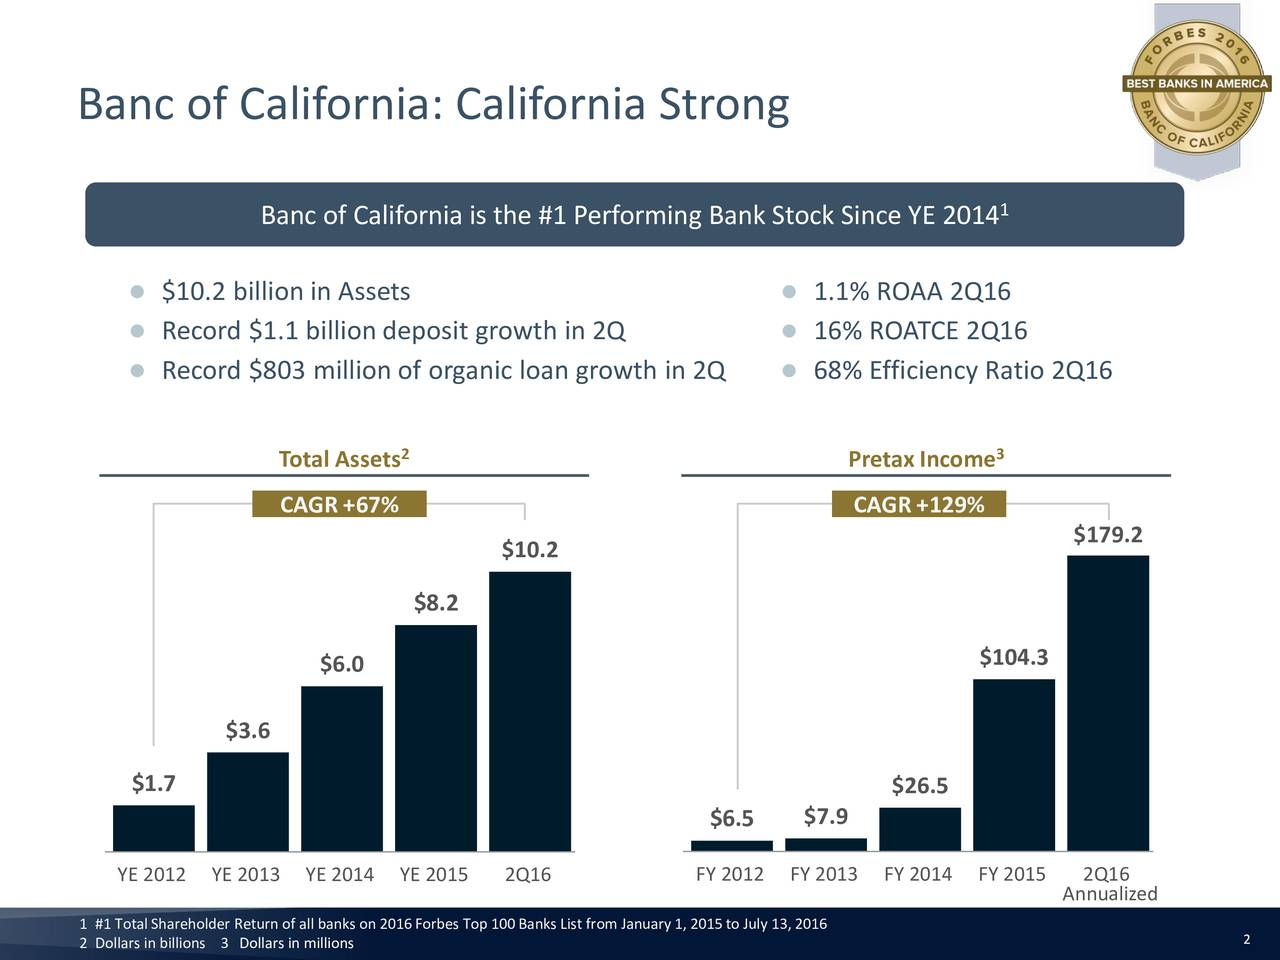 1 Banc of California is the #1 Performing Bank Stock Since YE 2014 $10.2 billion in Assets  1.1% ROAA 2Q16 Record $1.1 billion deposit growth in 2Q  16% ROATCE 2Q16 Record $803 million of organic loan growth in 2Q  68% Efficiency Ratio 2Q16 Total Assets PretaxIncome 3 CAGR+67% CAGR+129% $179.2 $10.2 $8.2 $104.3 $6.0 $3.6 $1.7 $26.5 $6.5 $7.9 YE 2012 YE 2013 YE 2014 YE 2015 2Q16 FY 2012 FY 2013 FY 2014 FY 2015 Annualized 2 Dollars in billions 3 Dollars in millionsn 2016Forbes Top 100Banks List from January 1, 2015to July 132 2016